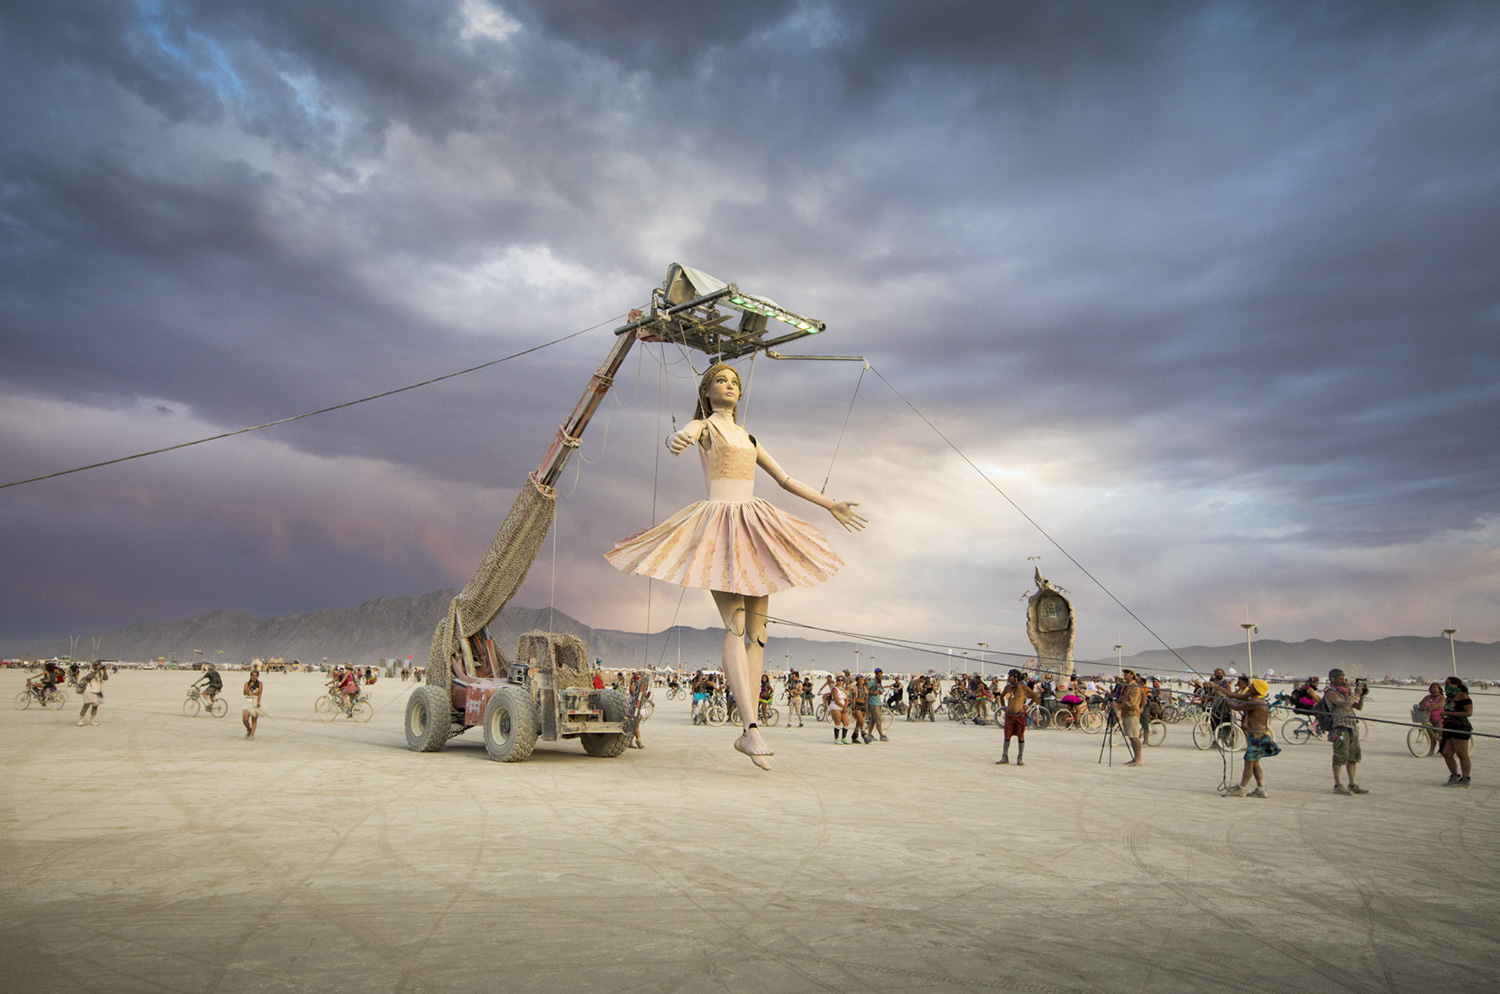 A sculpture is lifted at Burning Man